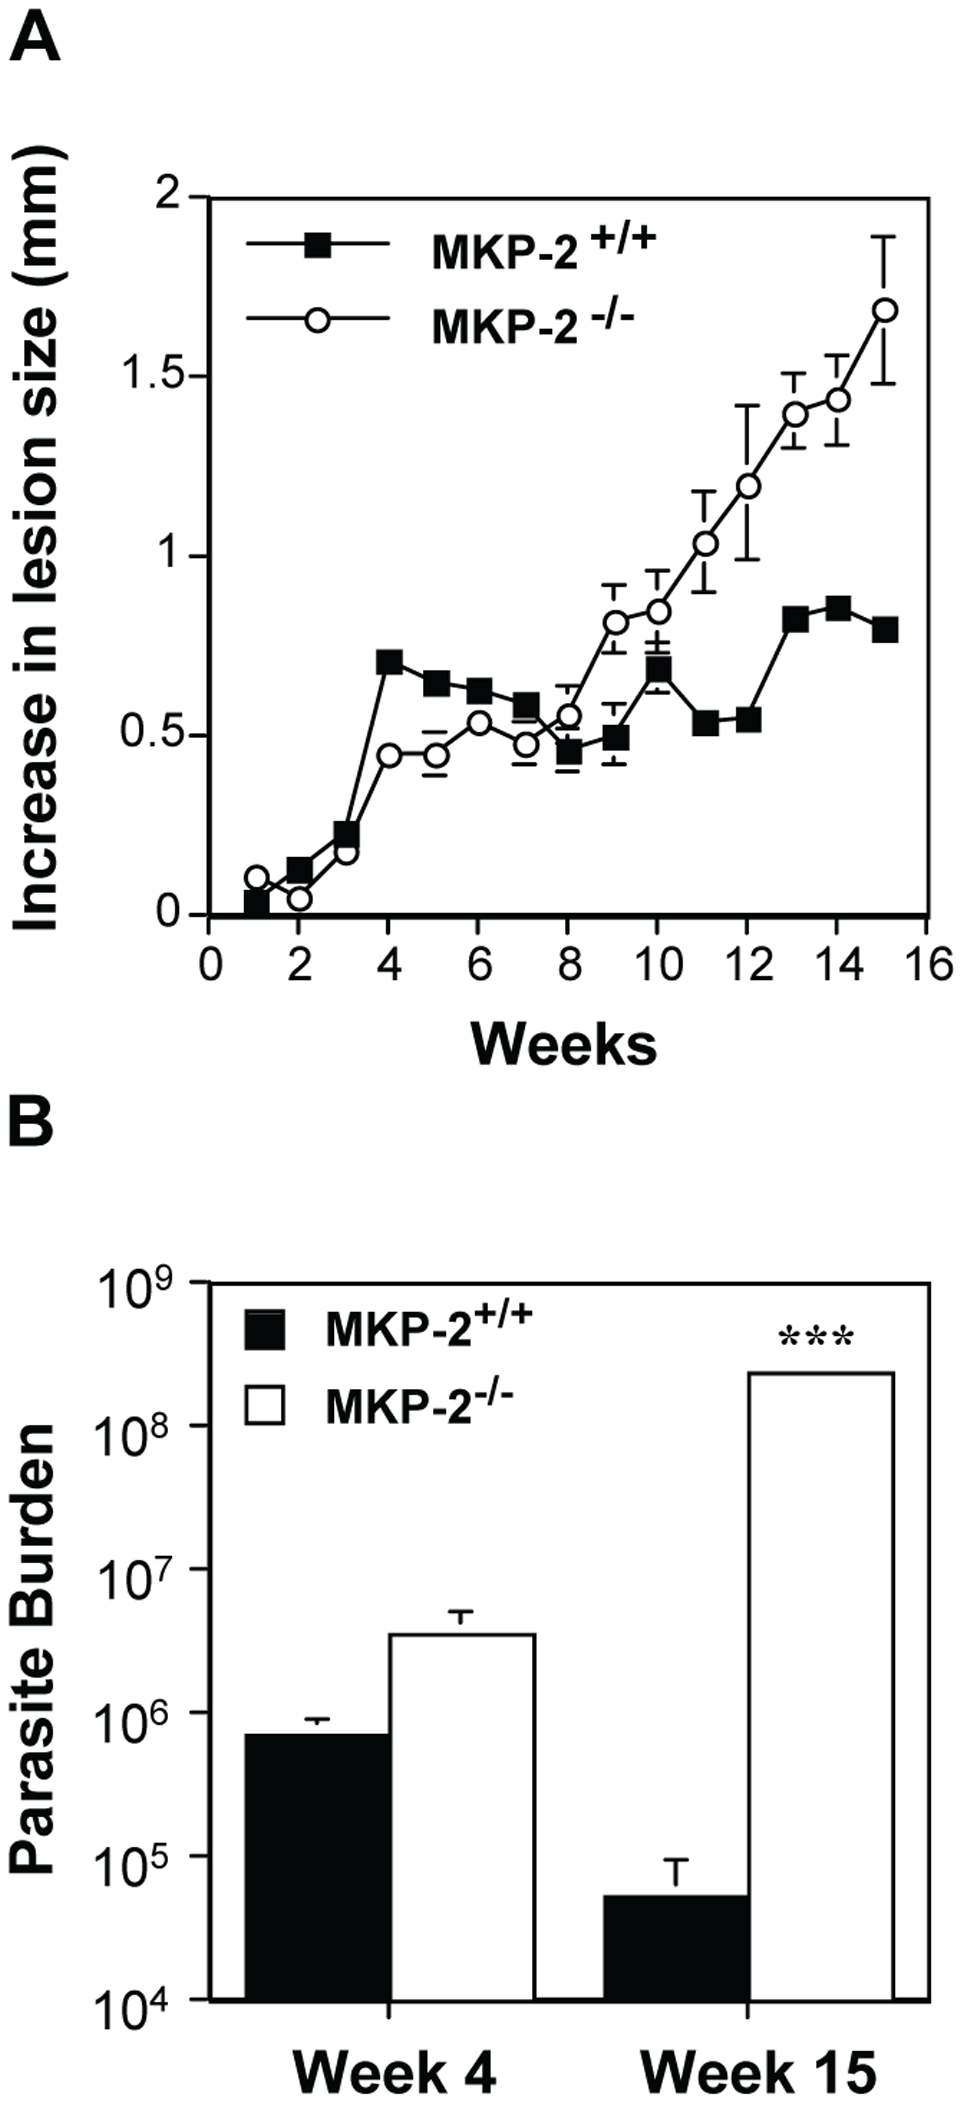 MKP-2 deficiency increases susceptibility to <i>L. mexicana</i> infection in the footpad.